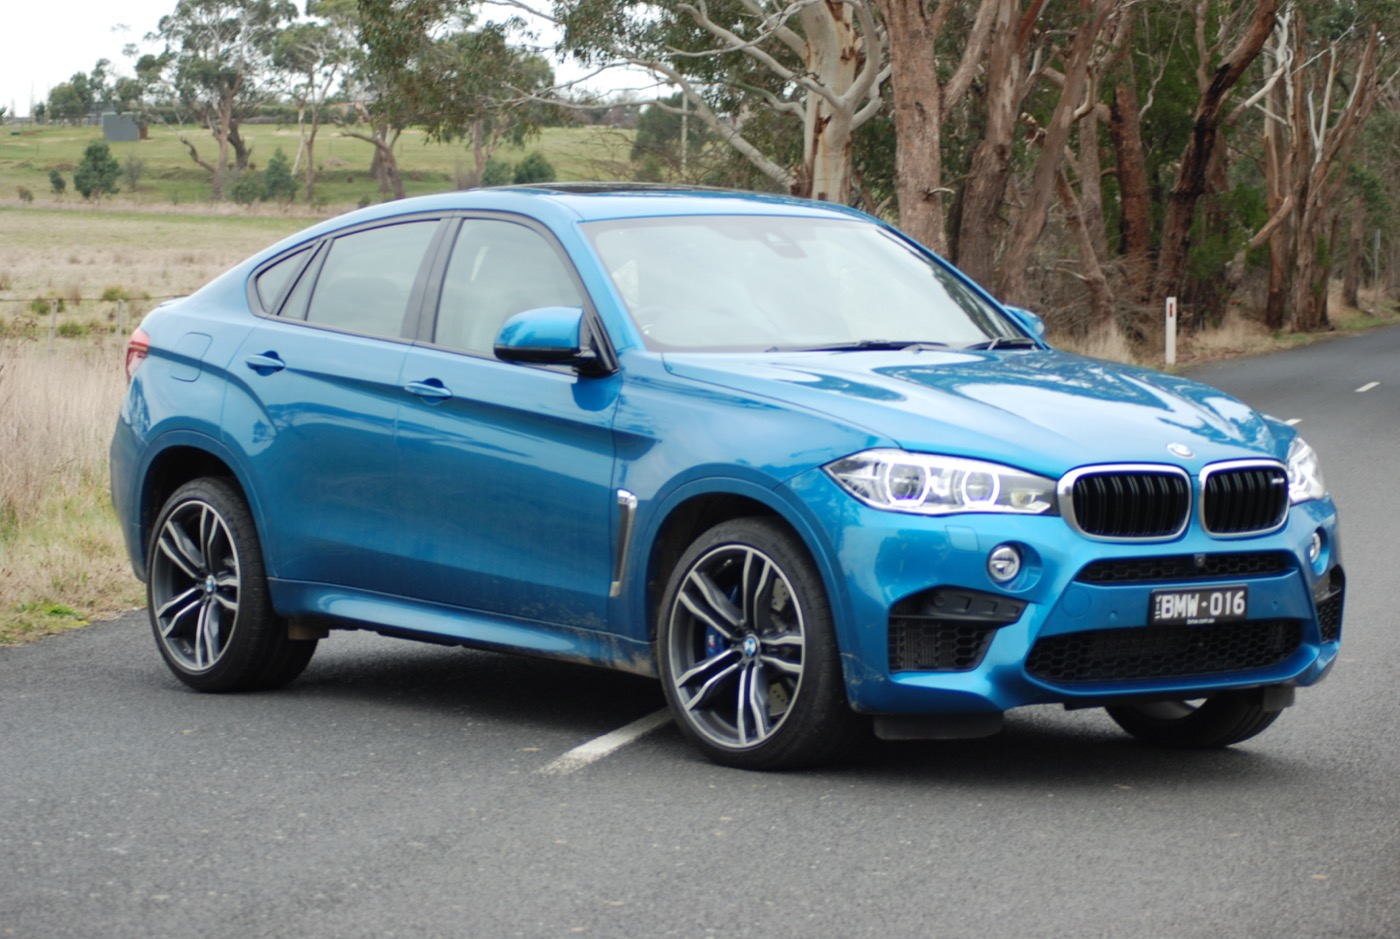 Review Bmw X6 M Review And Road Test